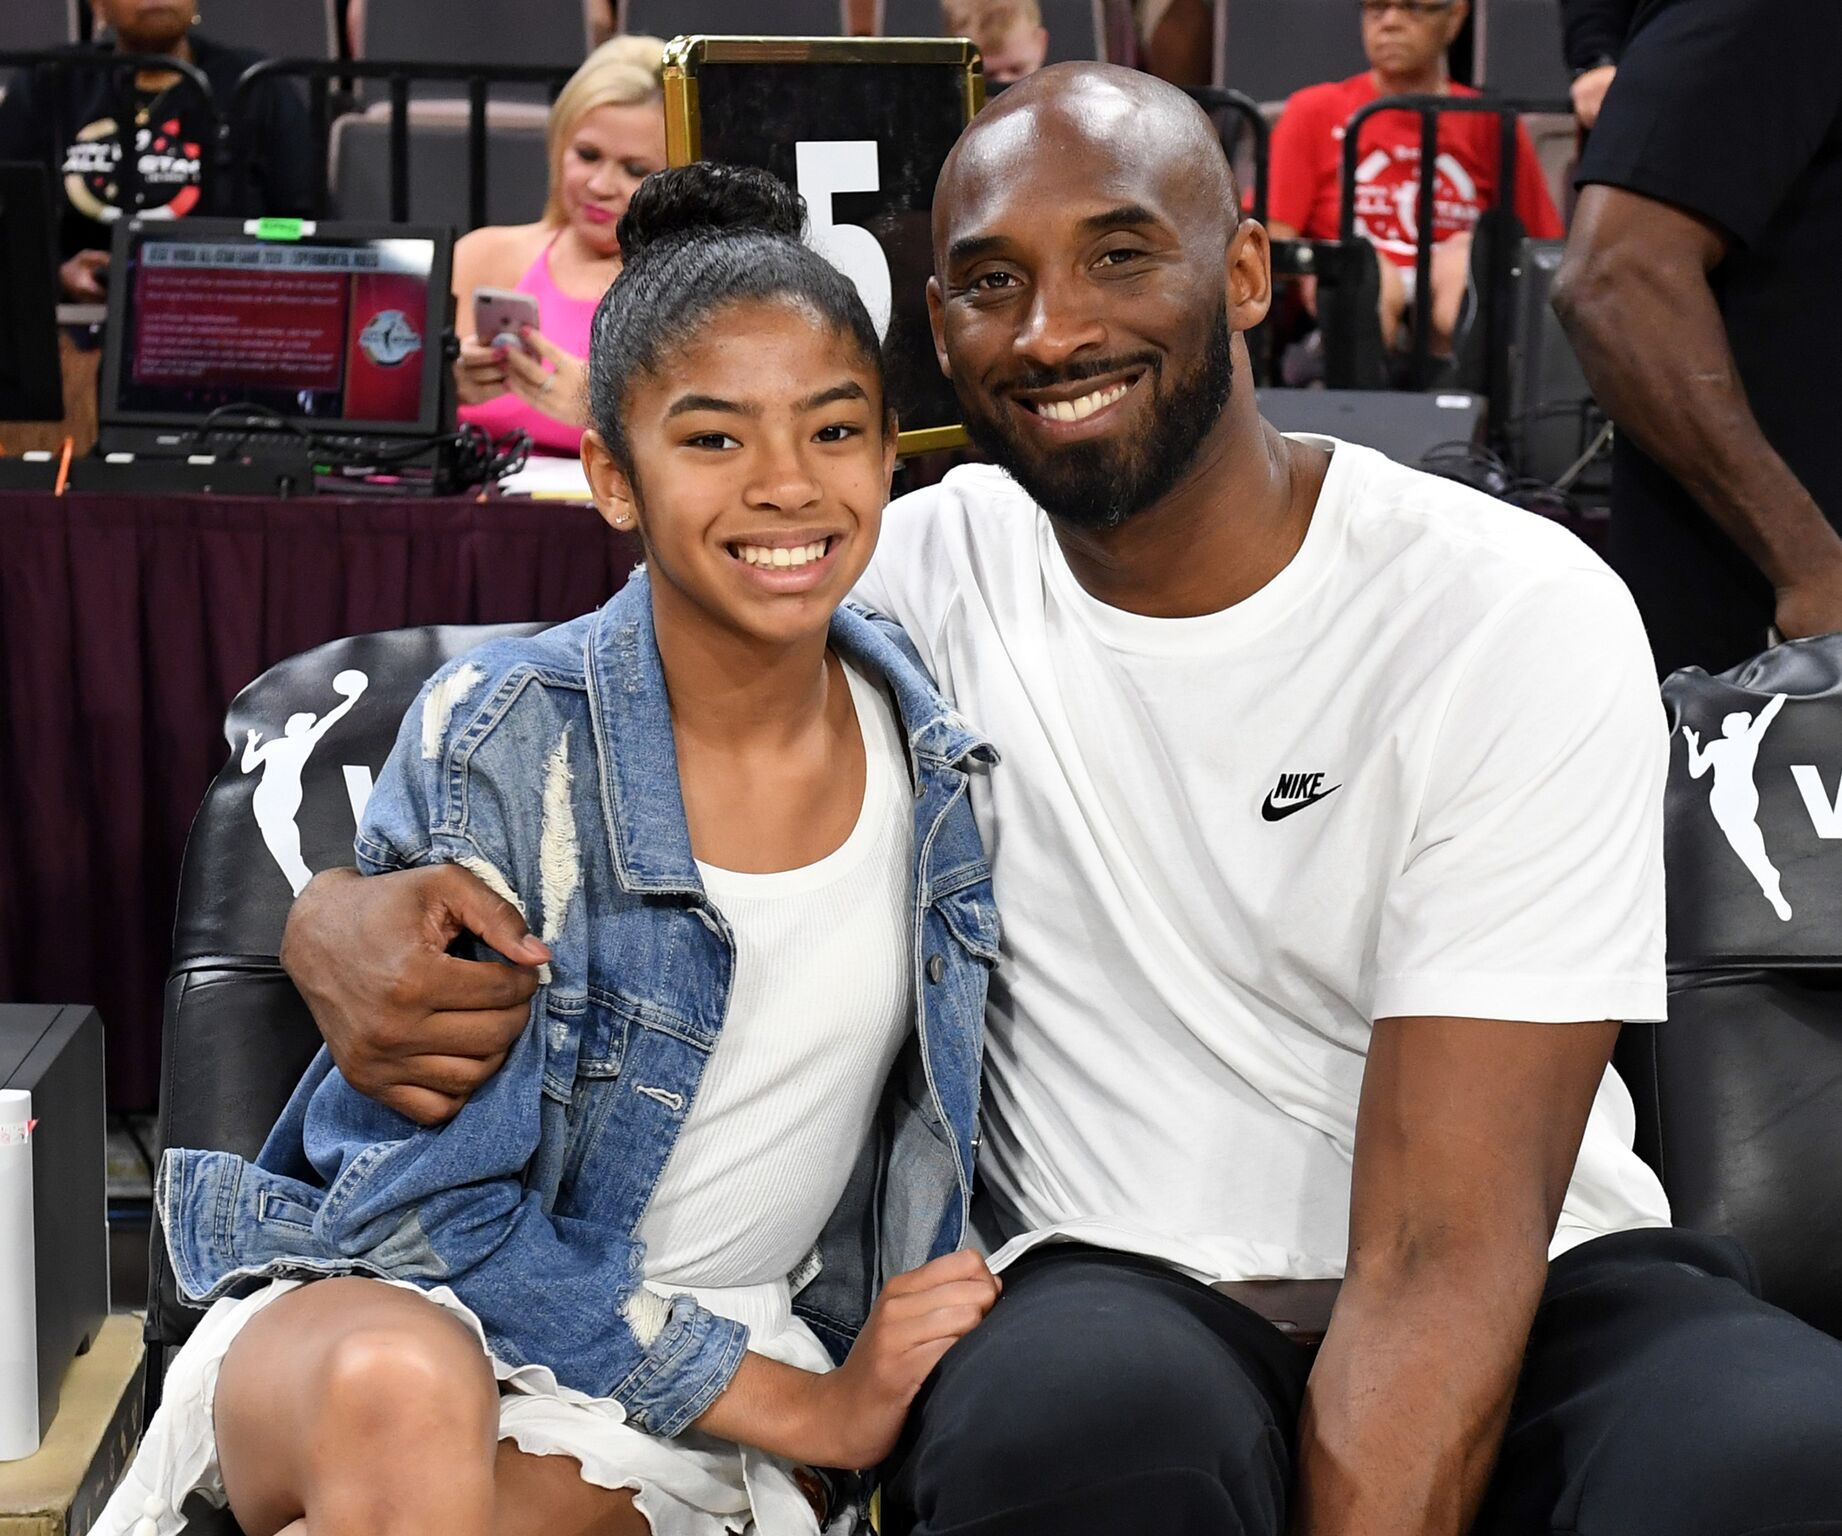 Gianna Bryant and her father, former NBA player Kobe Bryant, attend the WNBA All-Star Game 2019 at the Mandalay Bay Events Center on July 27, 2019 | Photo: Getty Images